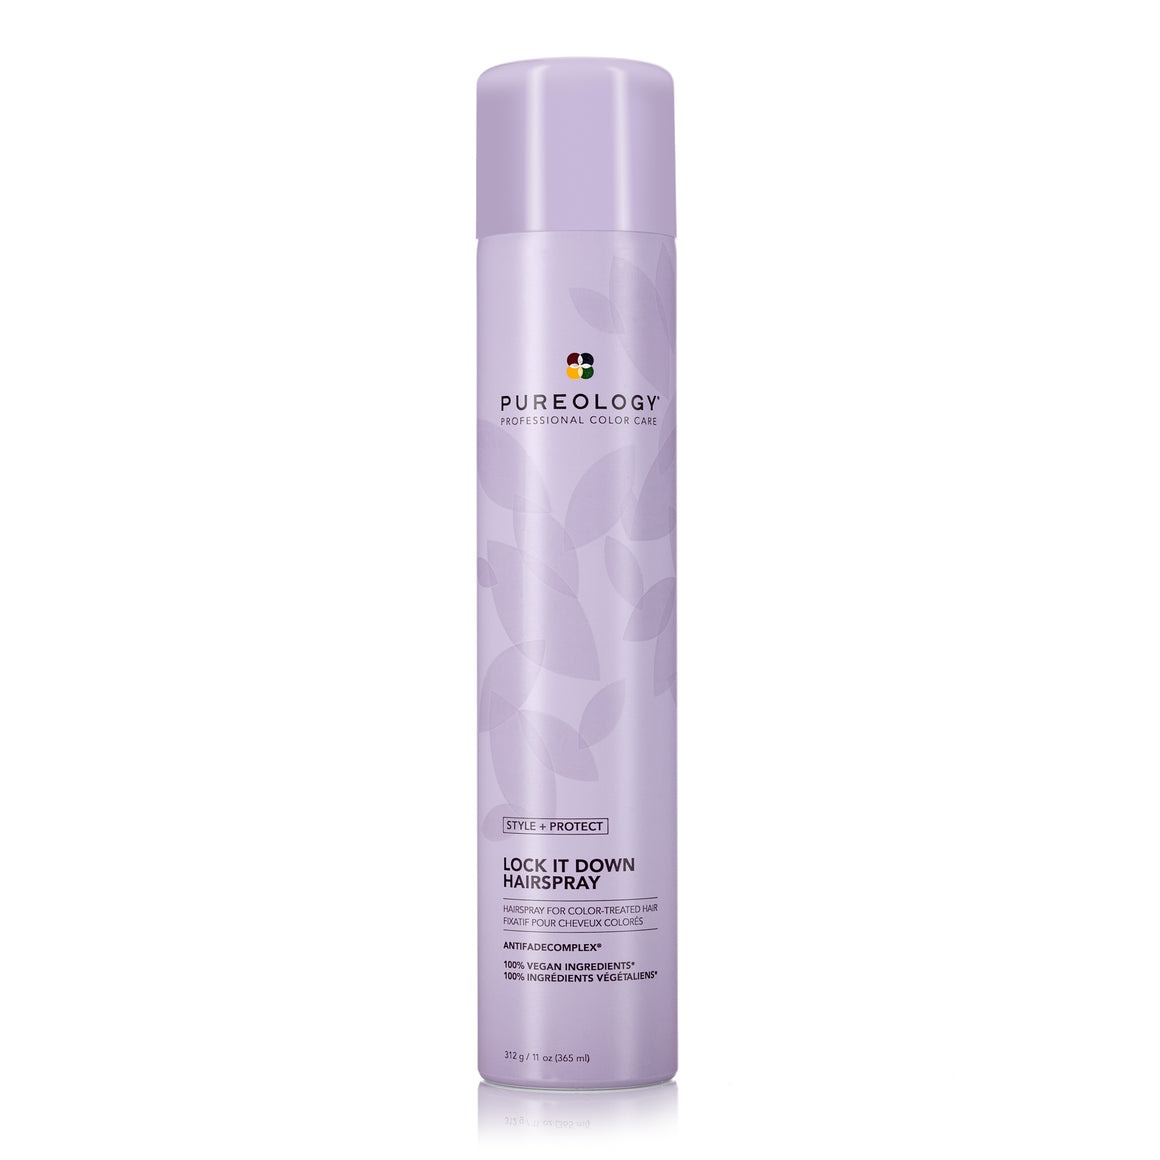 Pureology Lock it down Hairspray 365ml